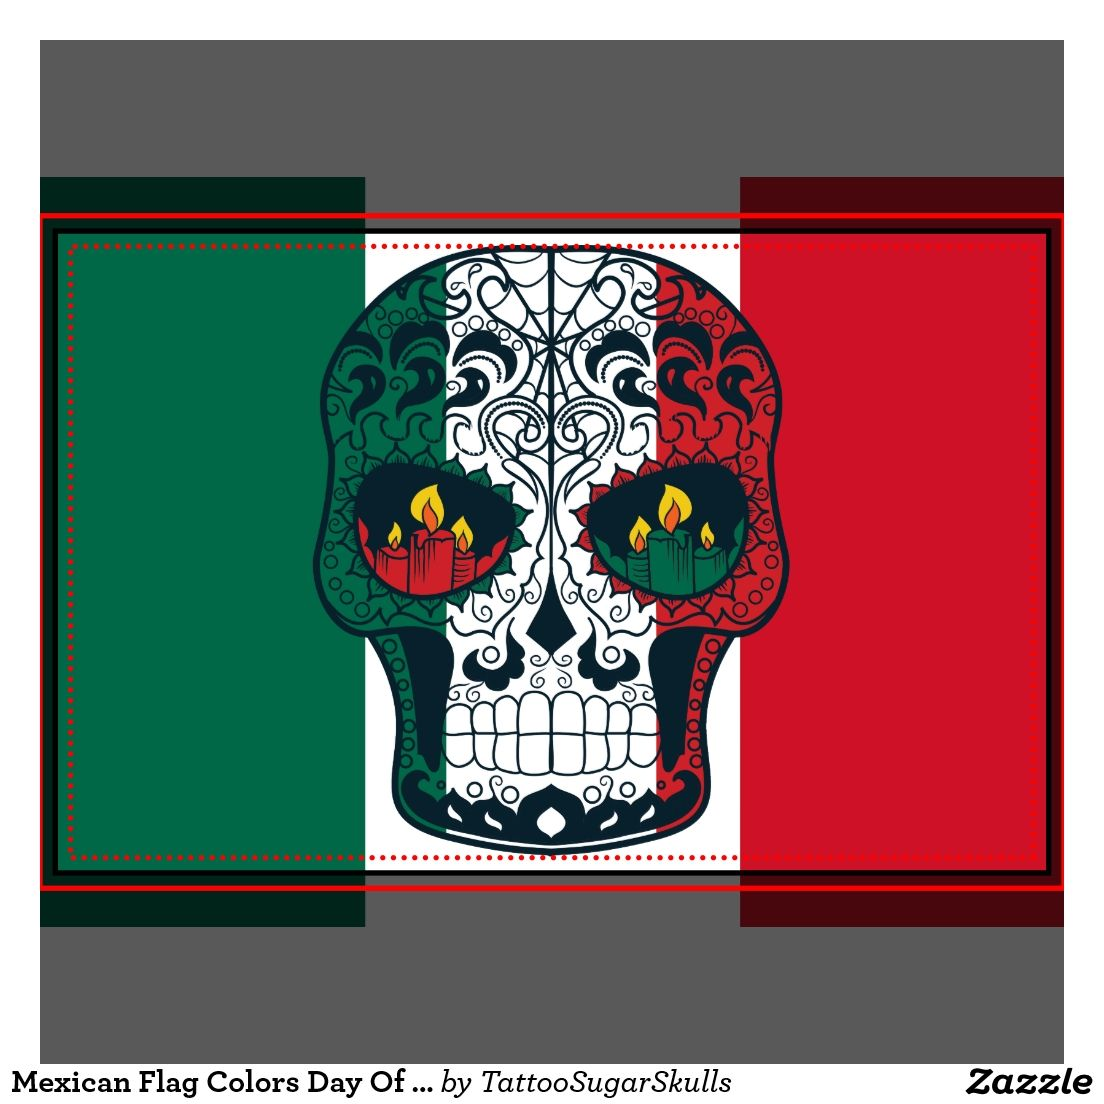 Mexican Flag Colors Day Of The Dead Sugar Skull Zazzle Com In 2020 Mexican Flag Colors Mexican Flags Sugar Skull